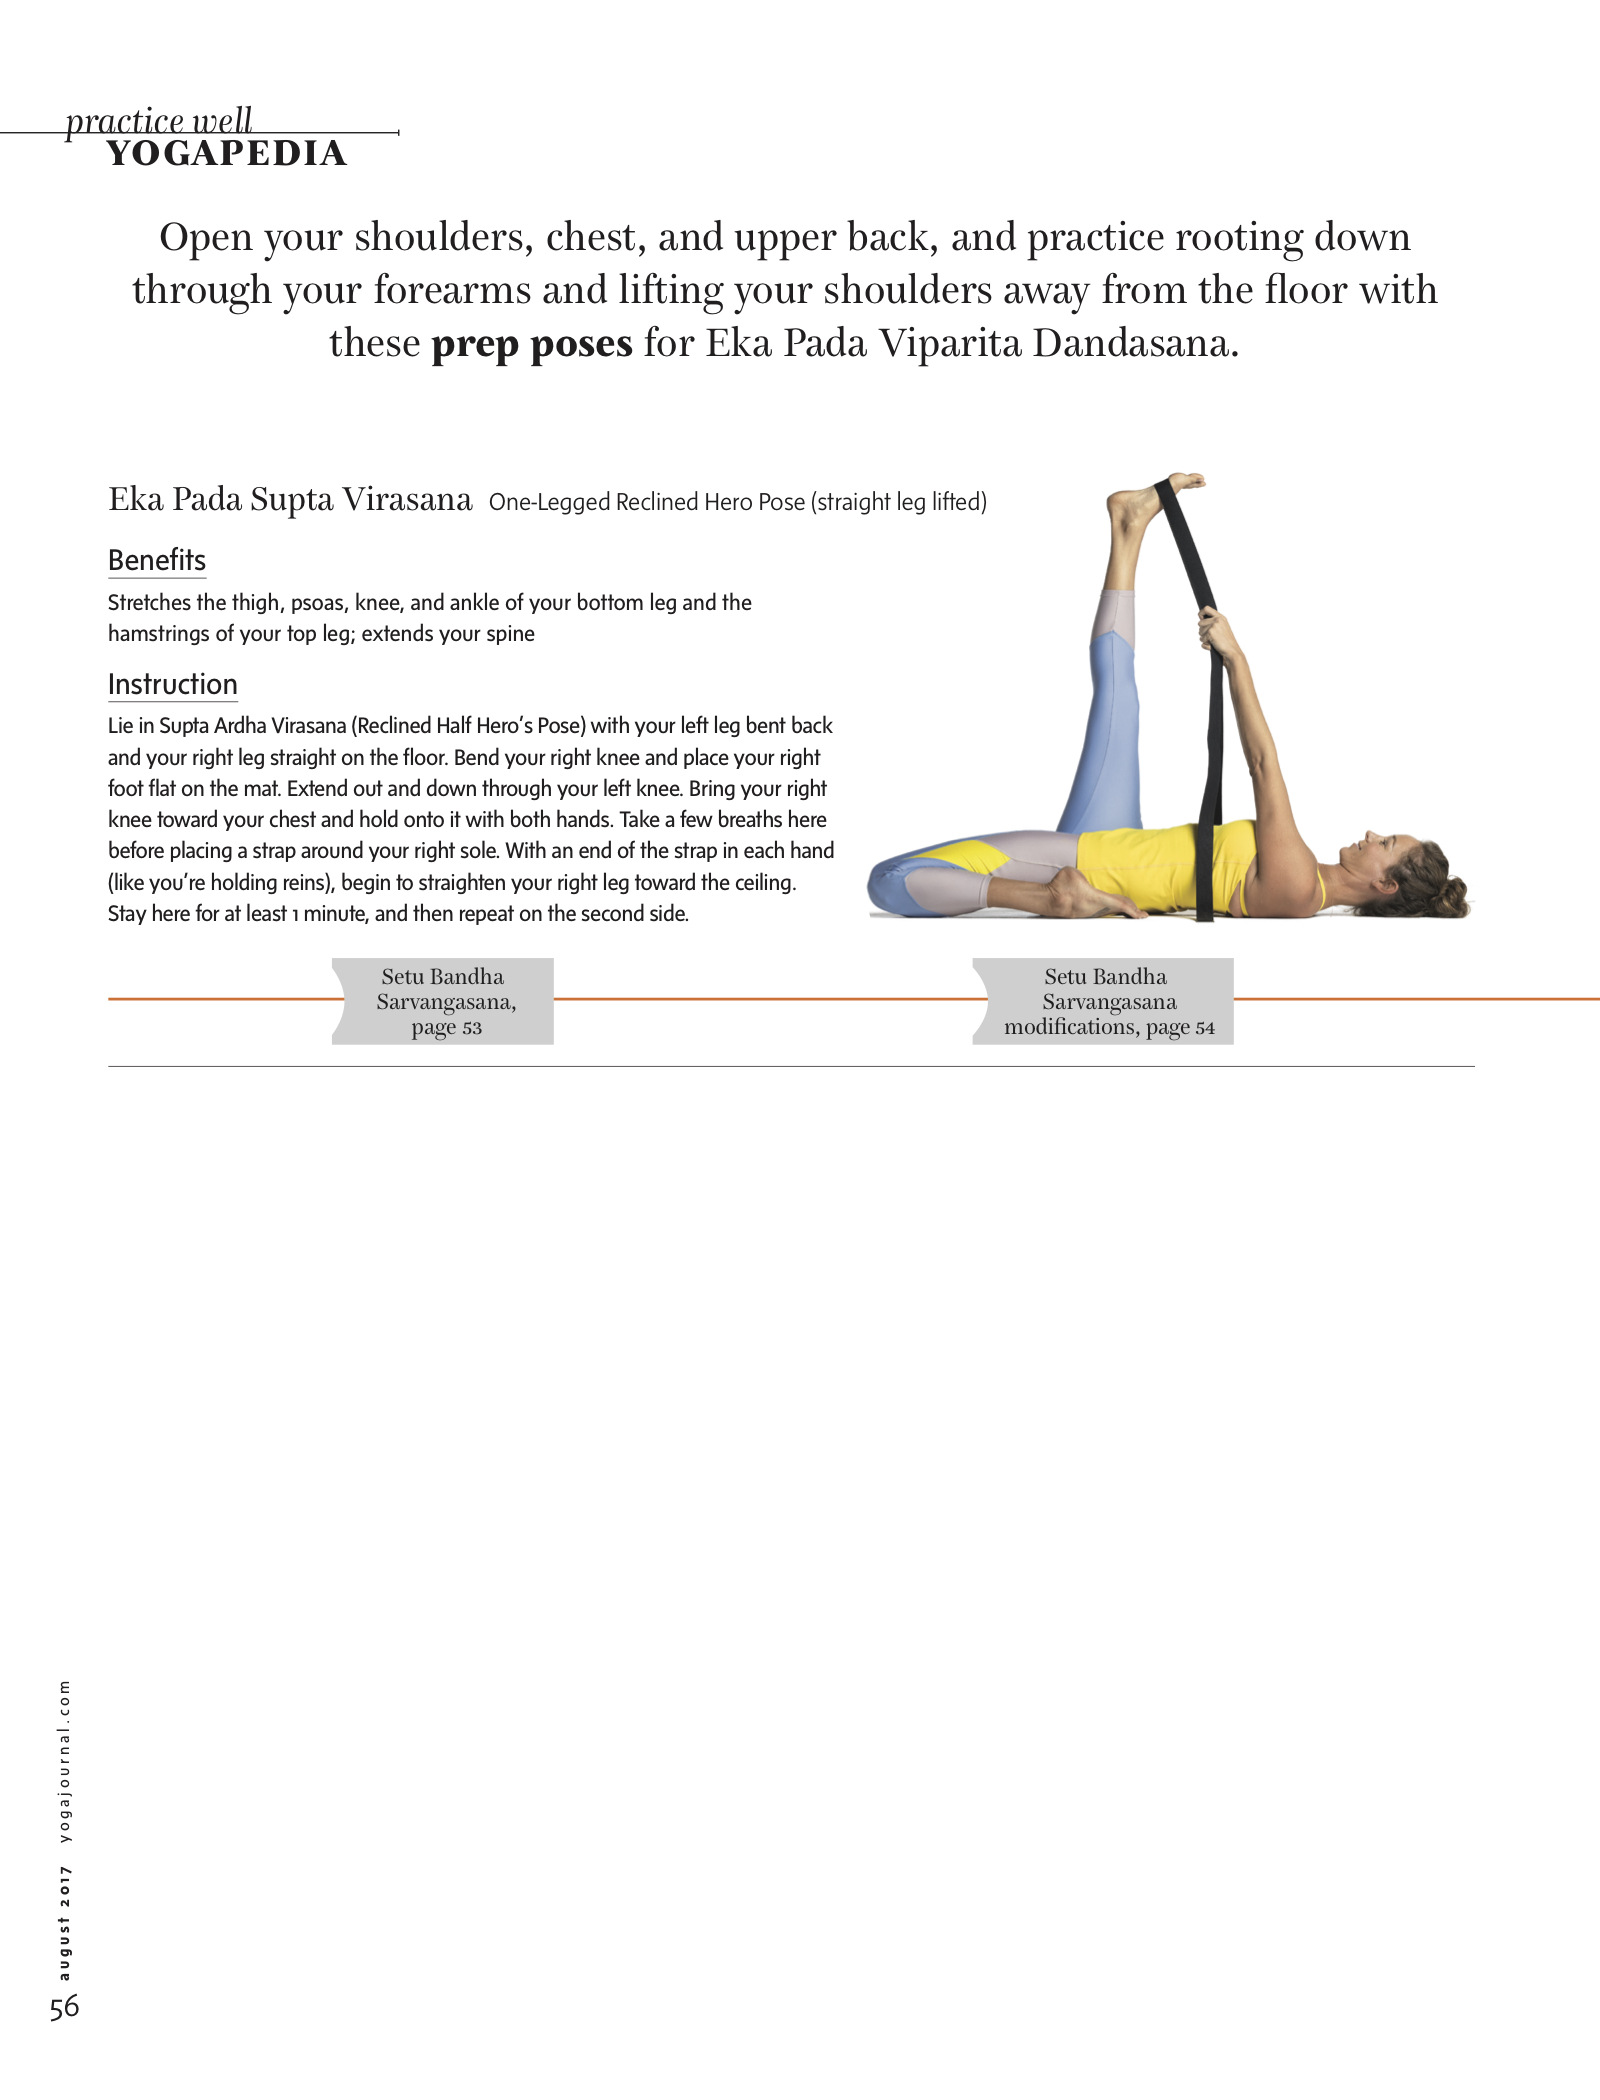 Yogapedia_290 copy.jpg